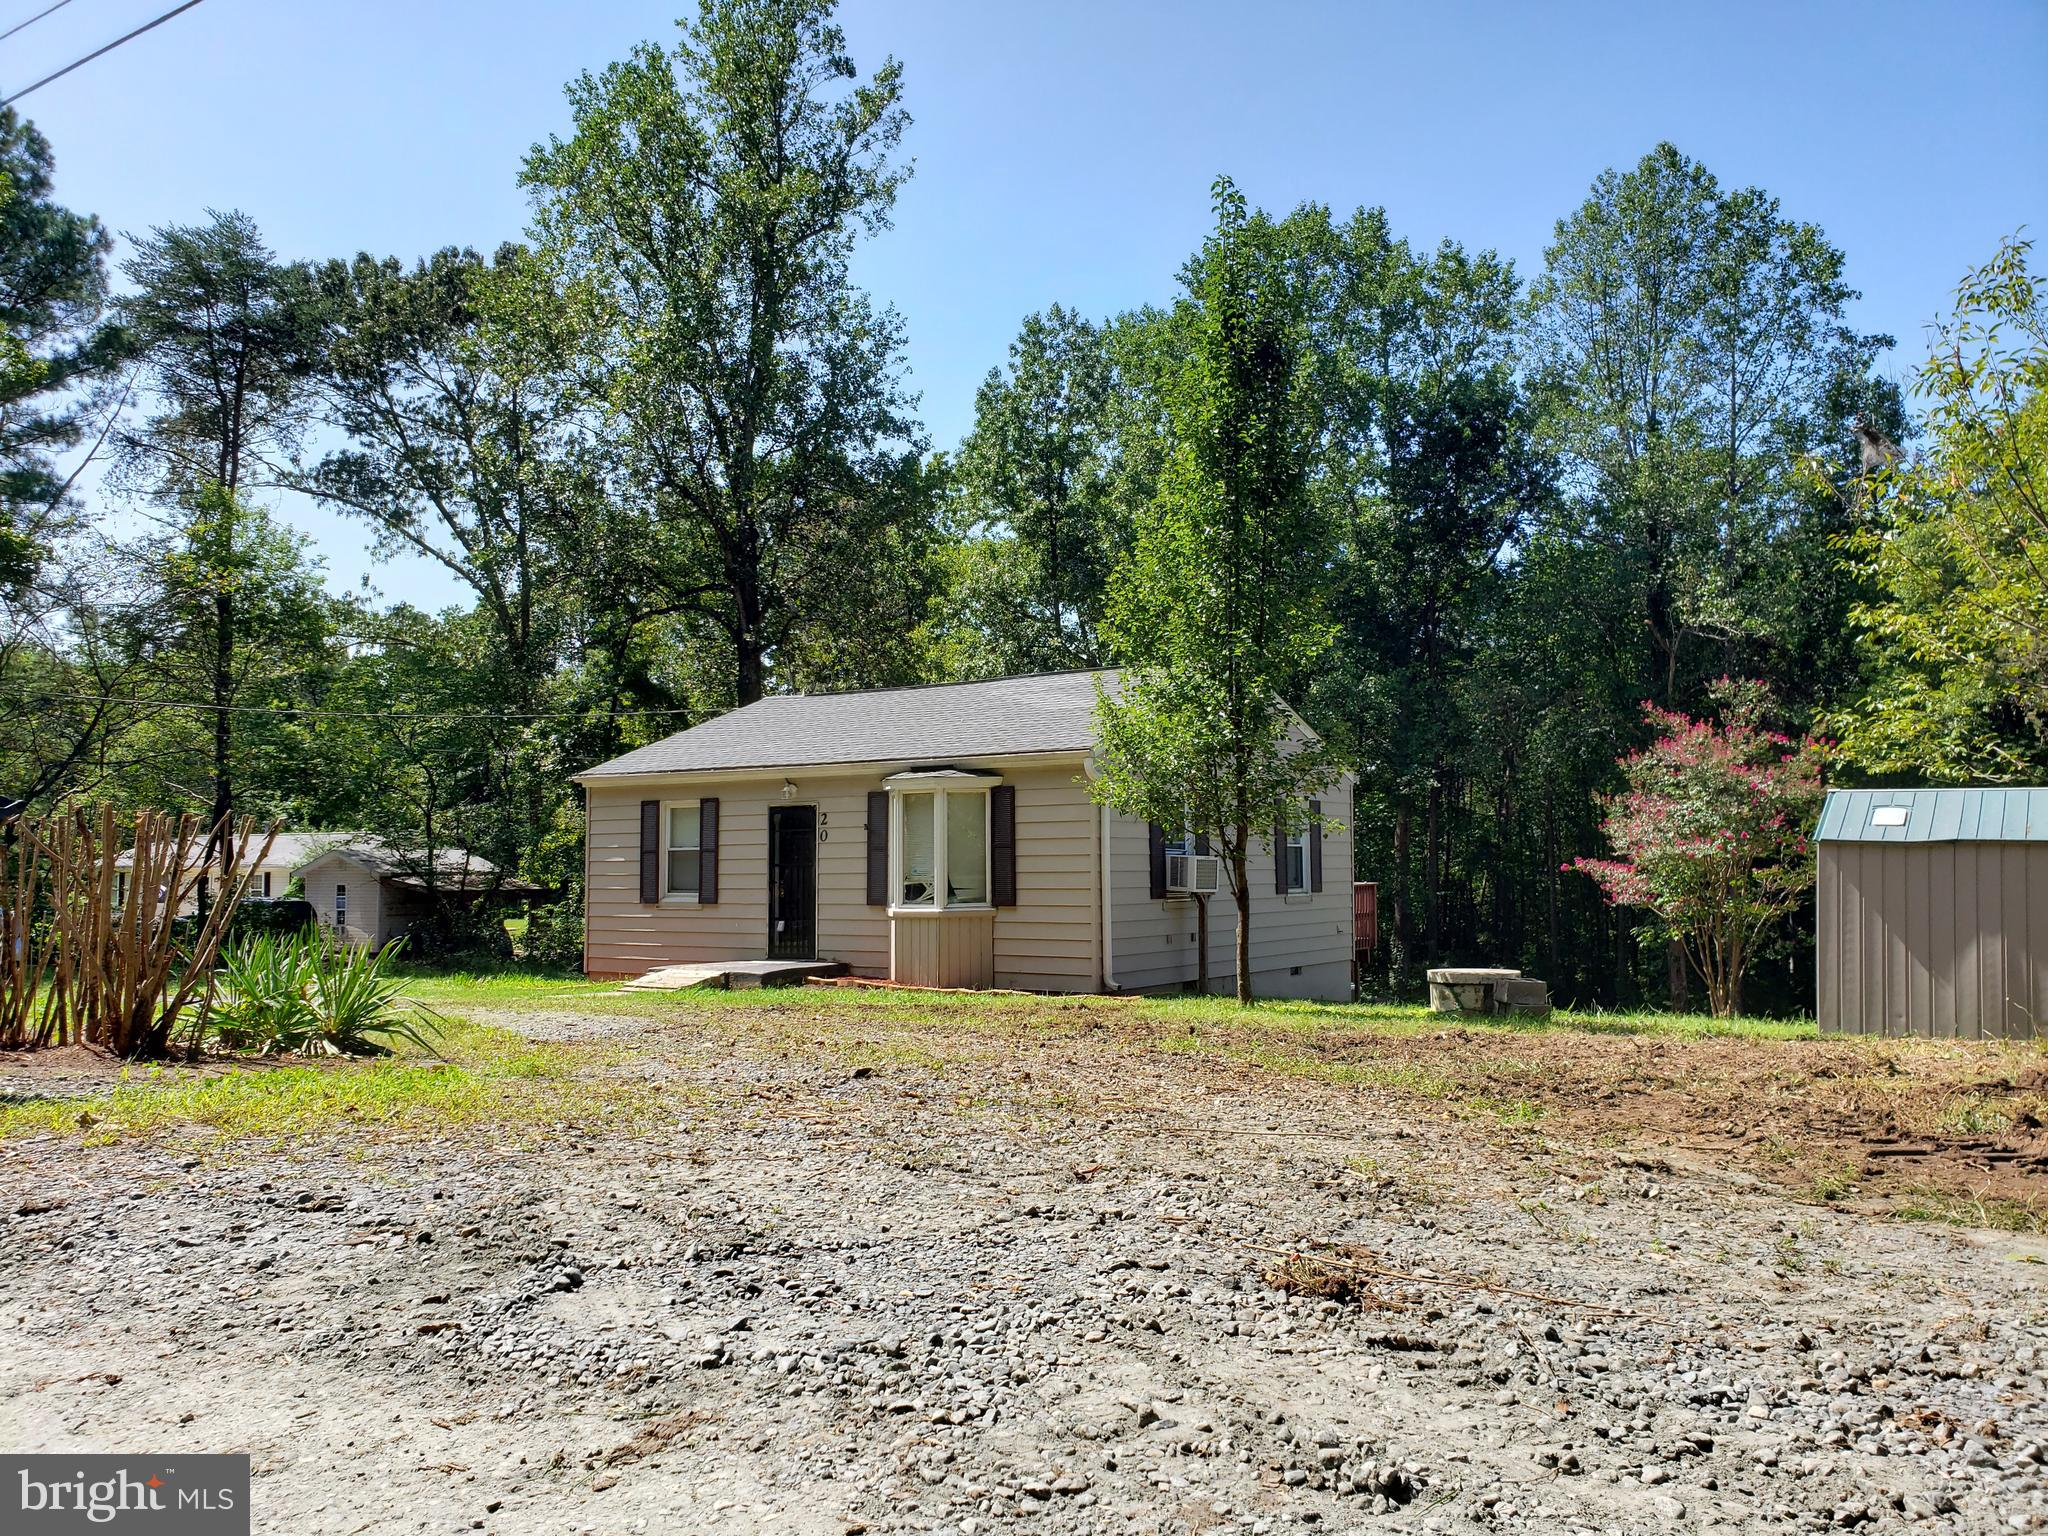 REMODEL RAMBLER ON CLOSE TO 1 ACRES LOT, 2BR's, 1FBA, UNDER $245K WITH NO HOA!!! NEW PAINT, NEW ROOF